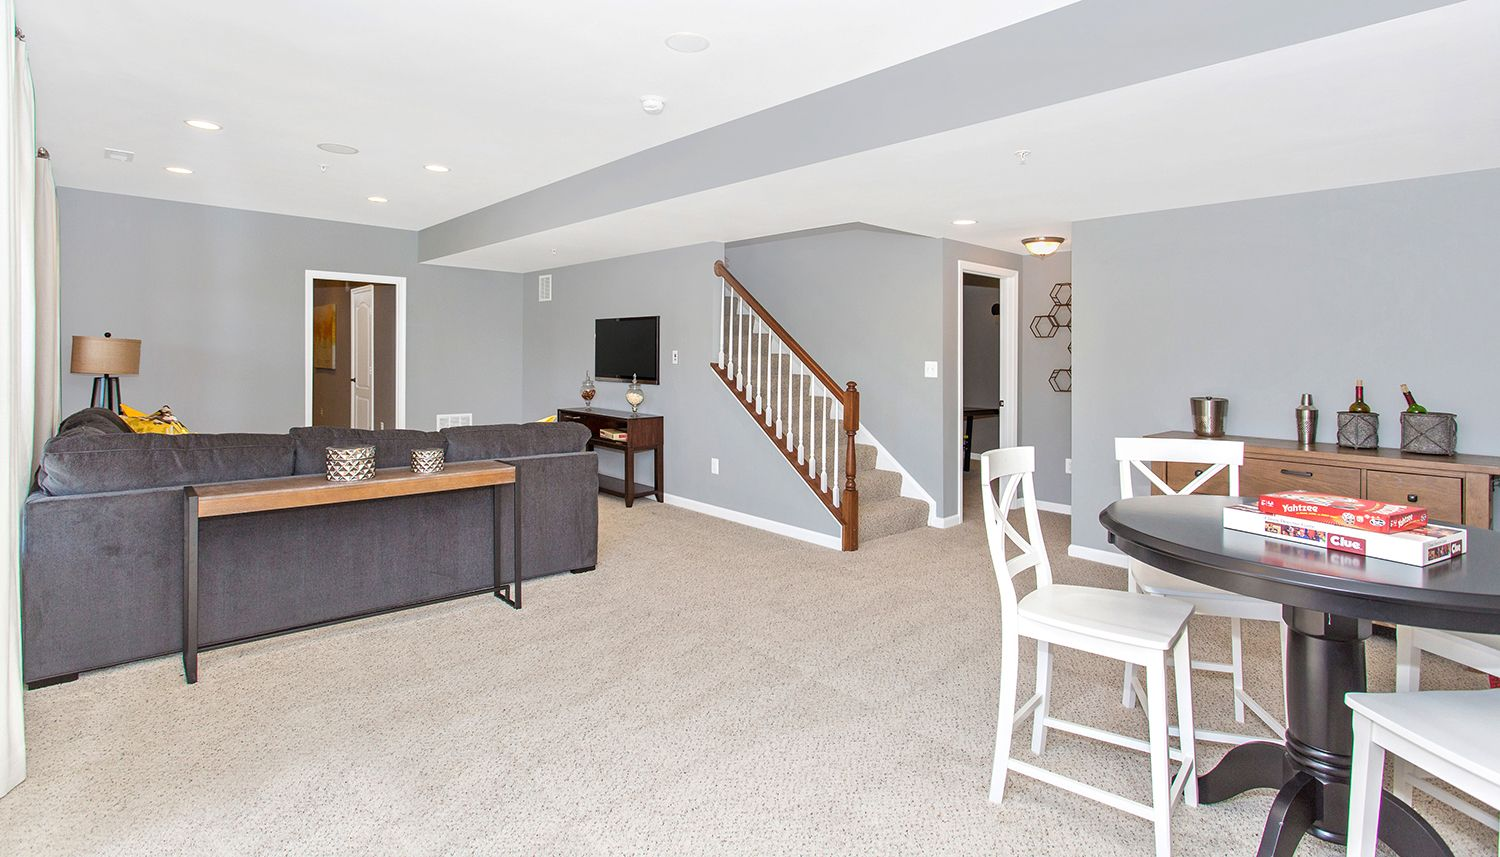 Single Family for Active at Castlerock Ii 2112 Gable Drive Jessup, Maryland 20794 United States